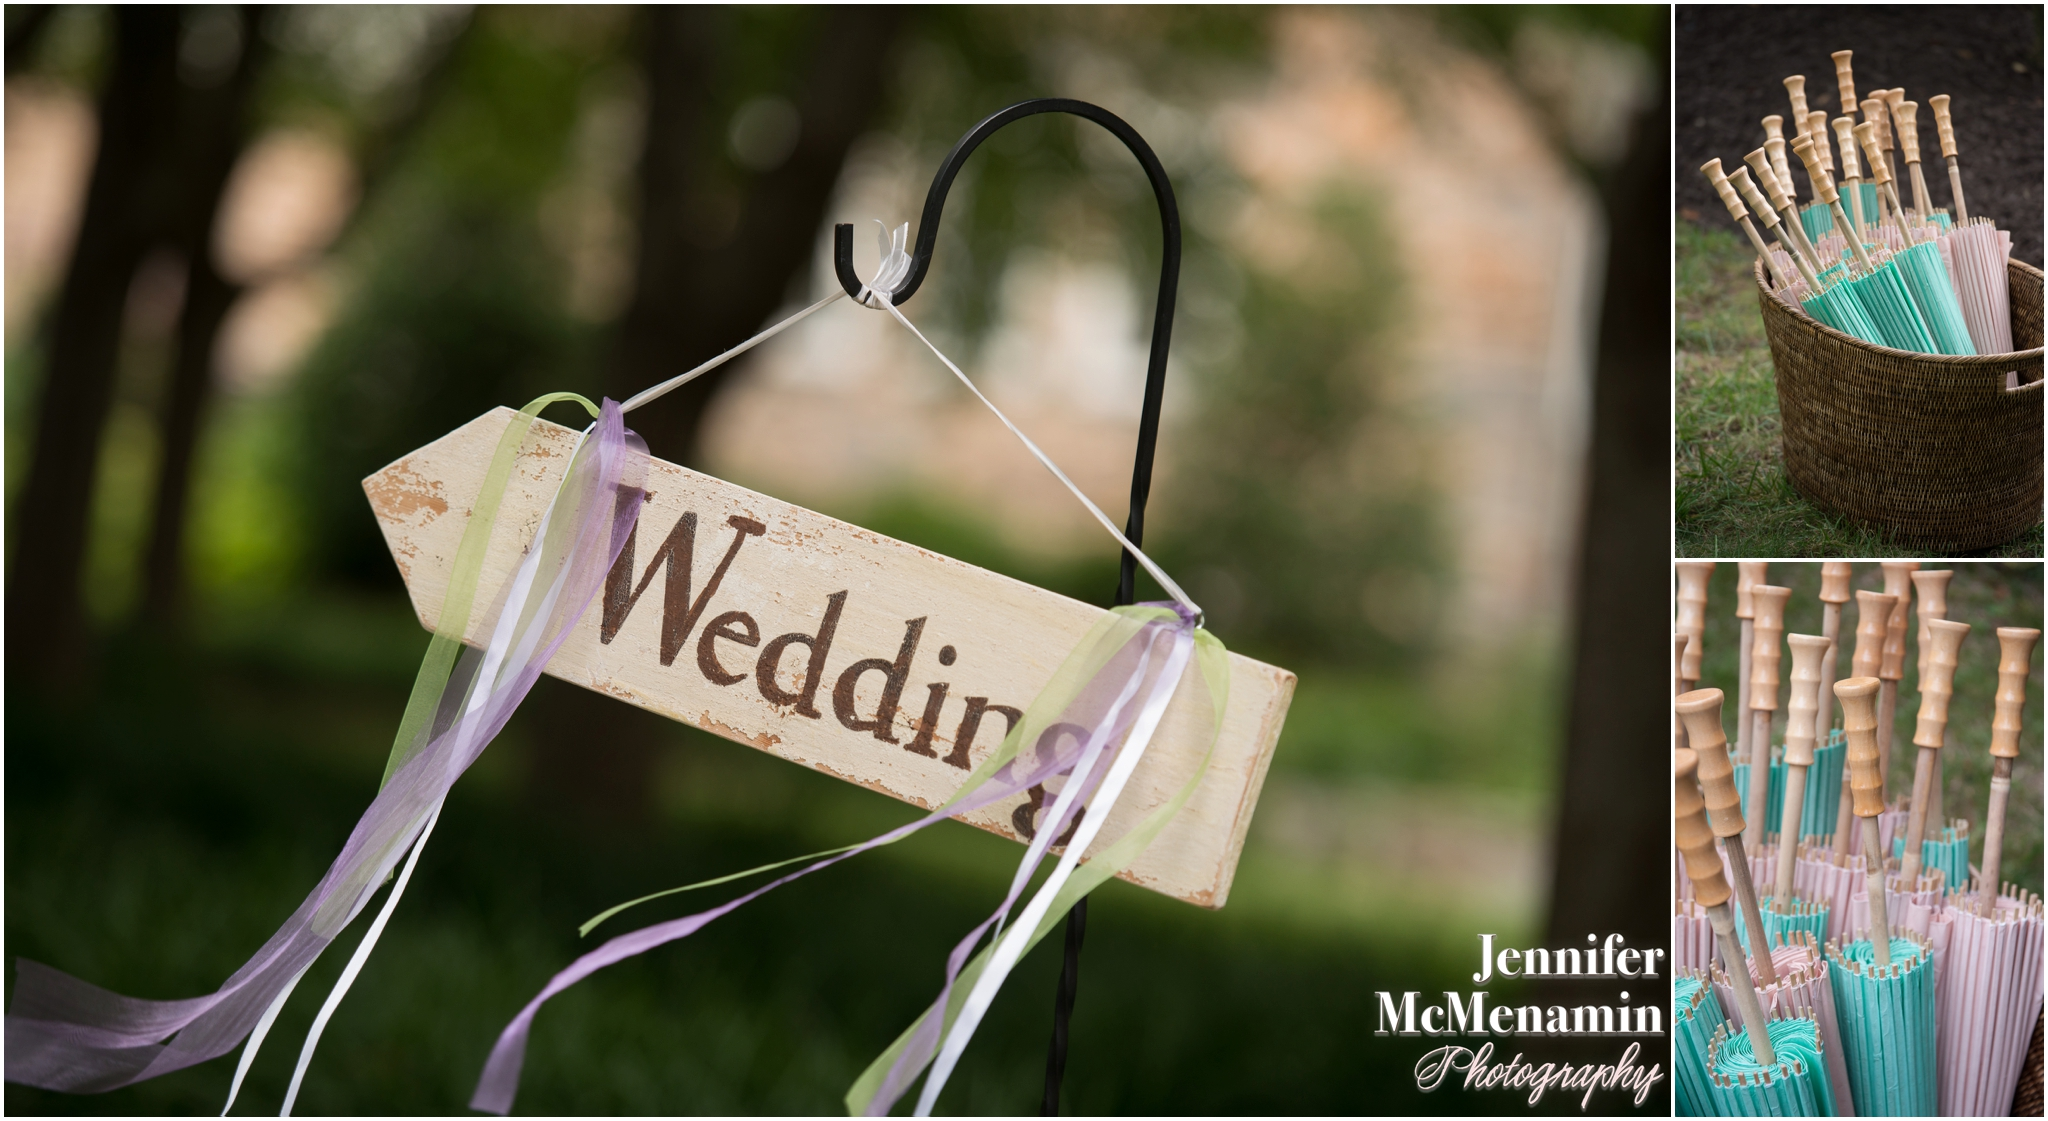 027-CoughlinPomper_01283-0236_JenniferMcMenaminPhotography_Private-Residence-Roland-Park_Baltimore-Wedding-Photography